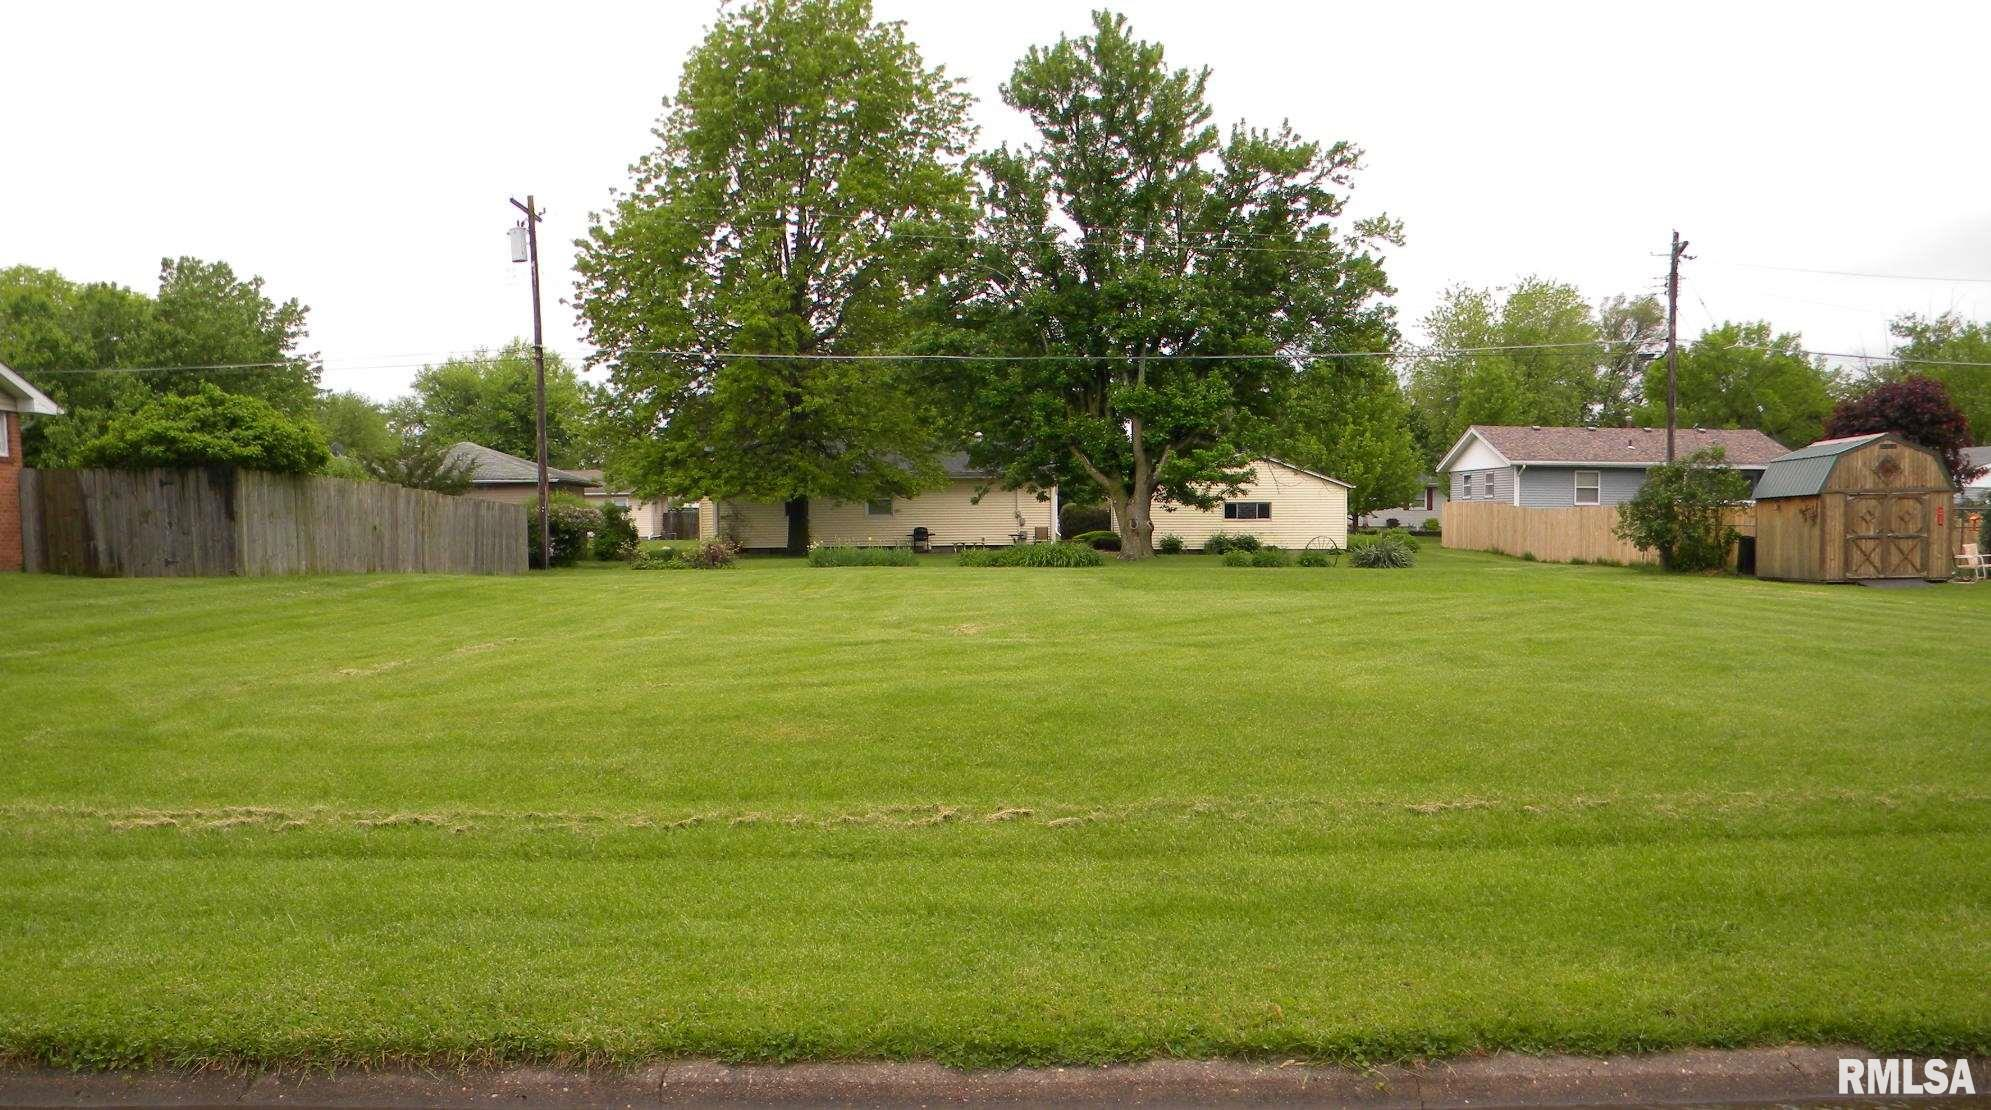 LOT 69 MEADOWS Property Photo - Andalusia, IL real estate listing